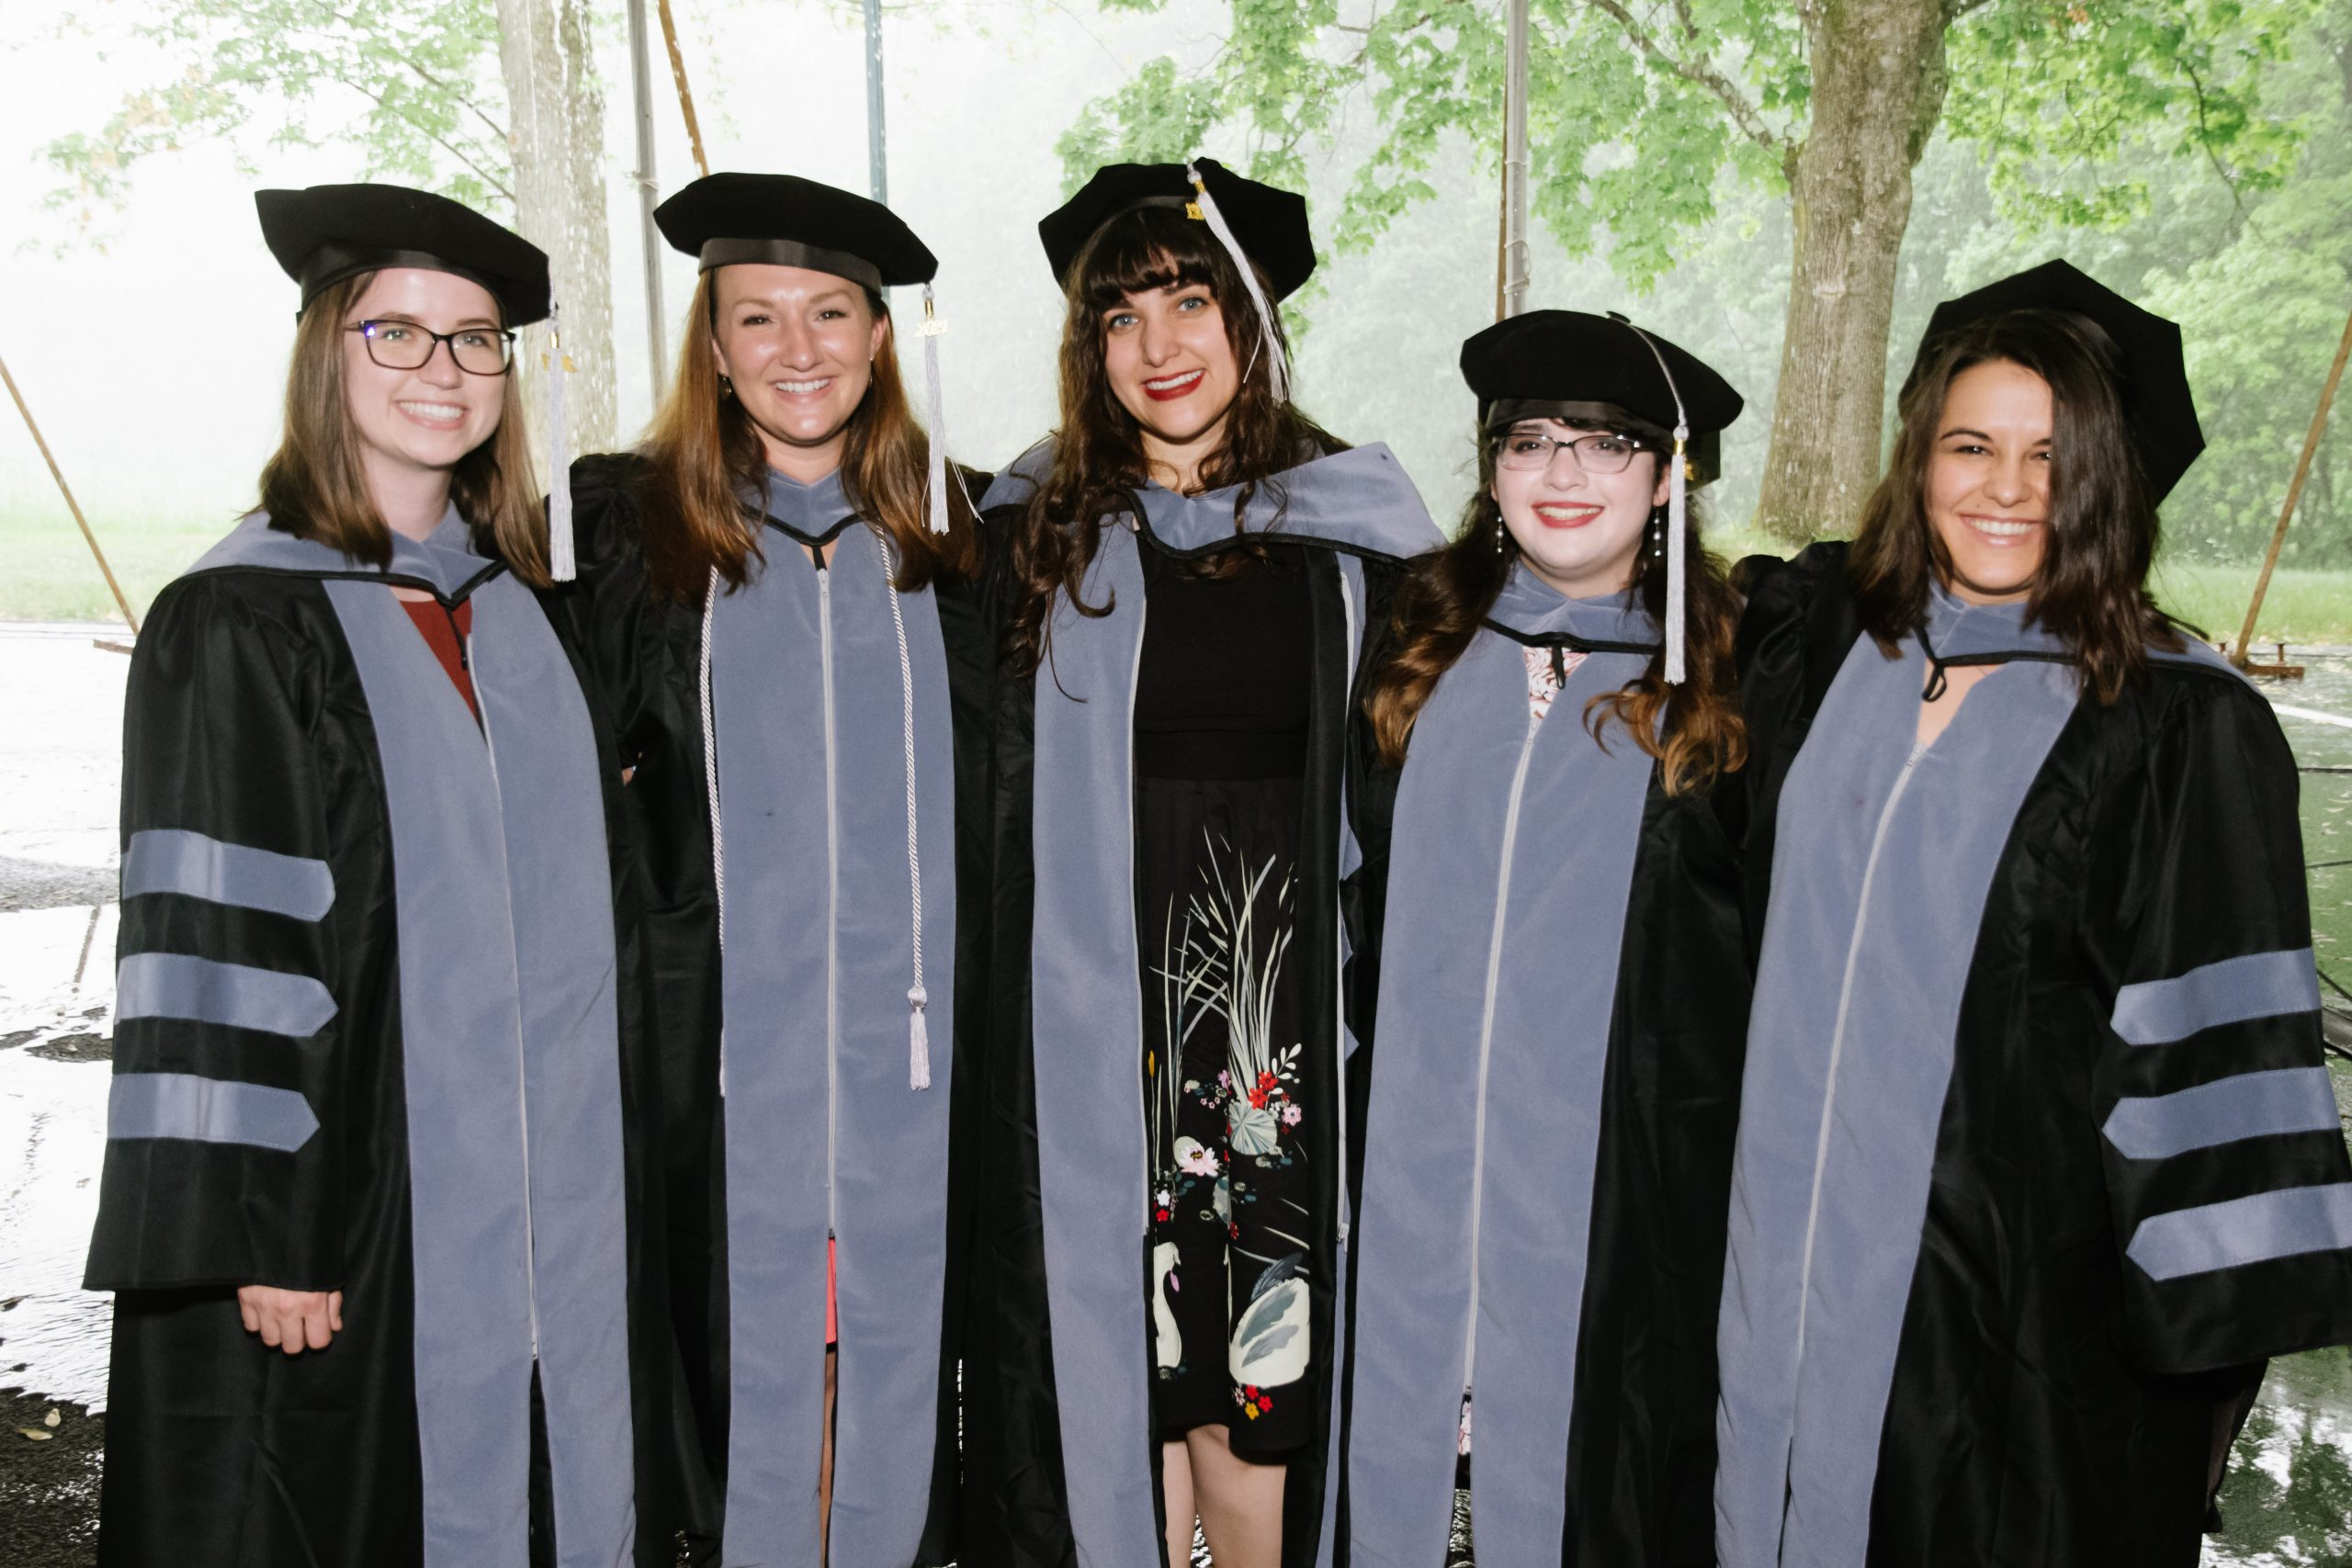 veterinary students in their gaps and gowns on graduation day